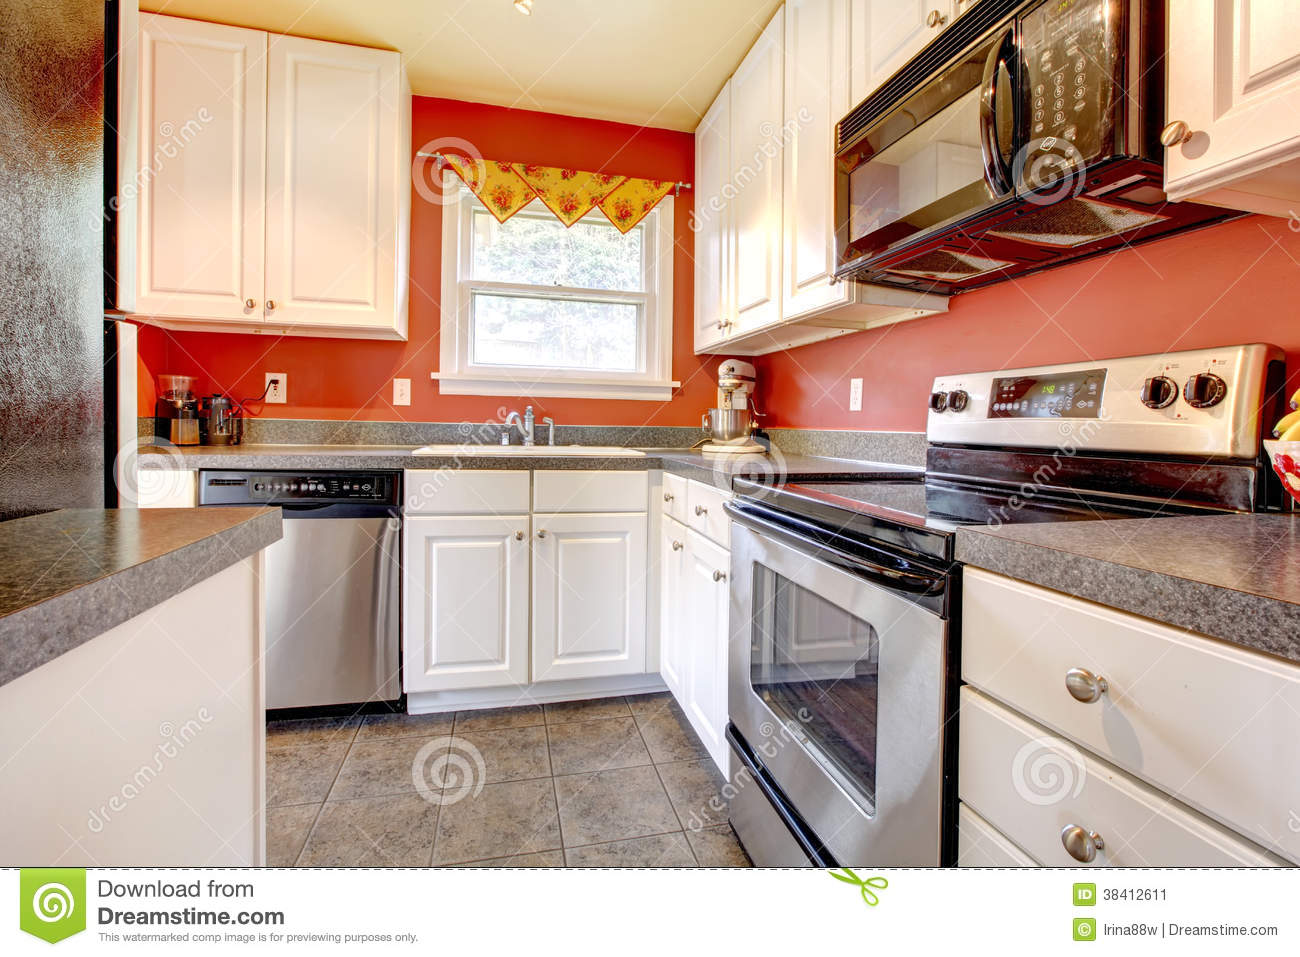 Cozy Kitchen Room With Red Wall And White Cabinets Stock Image Image 38412611